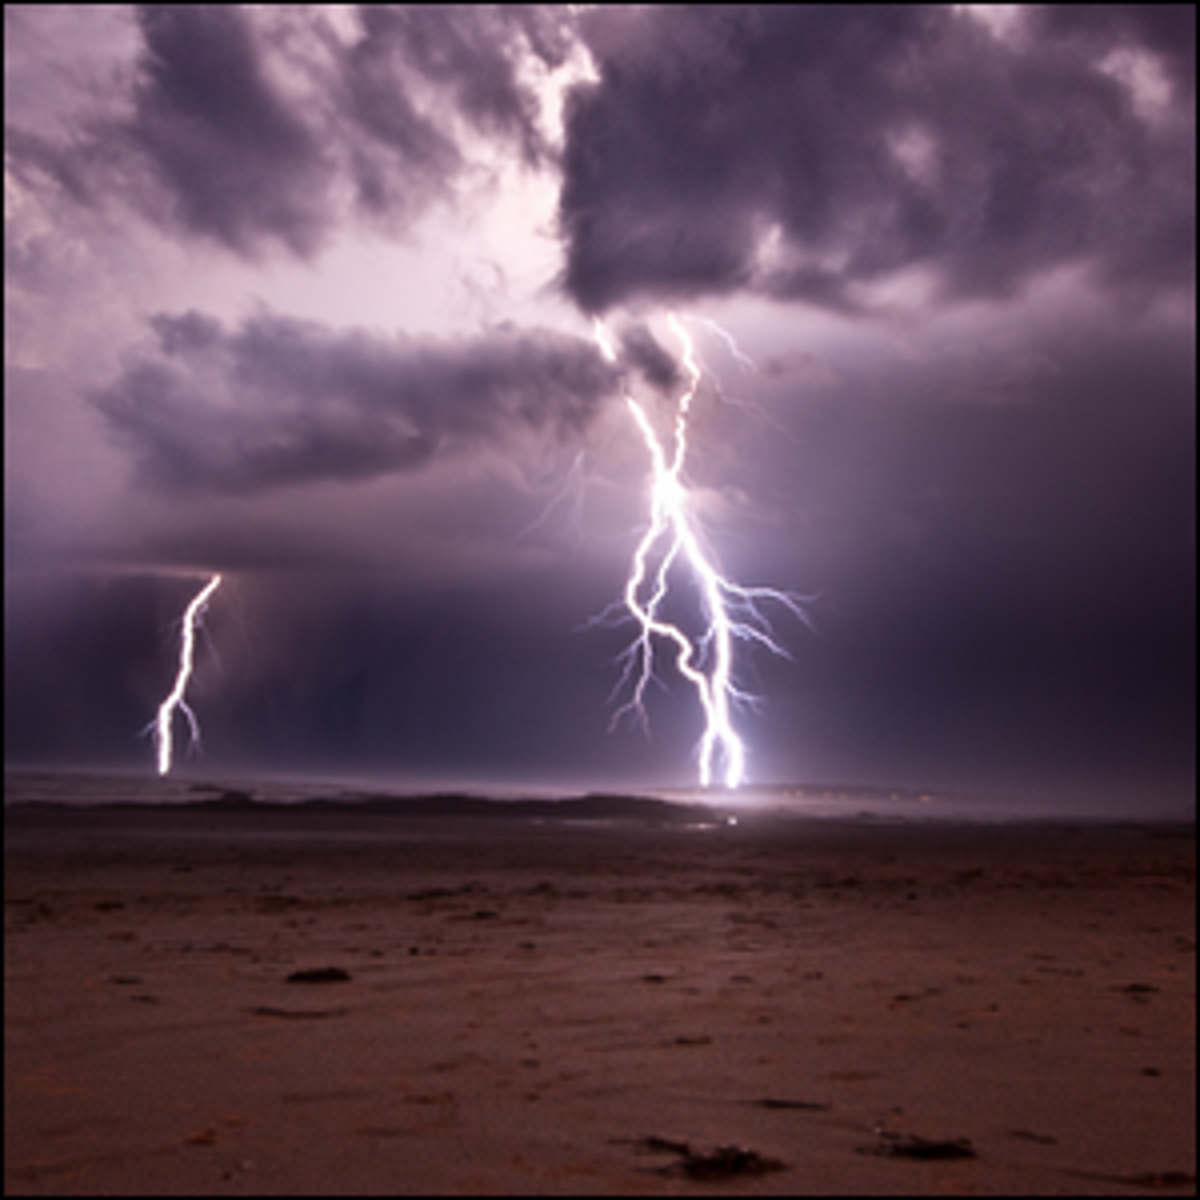 Lightning striking a sandy beach.